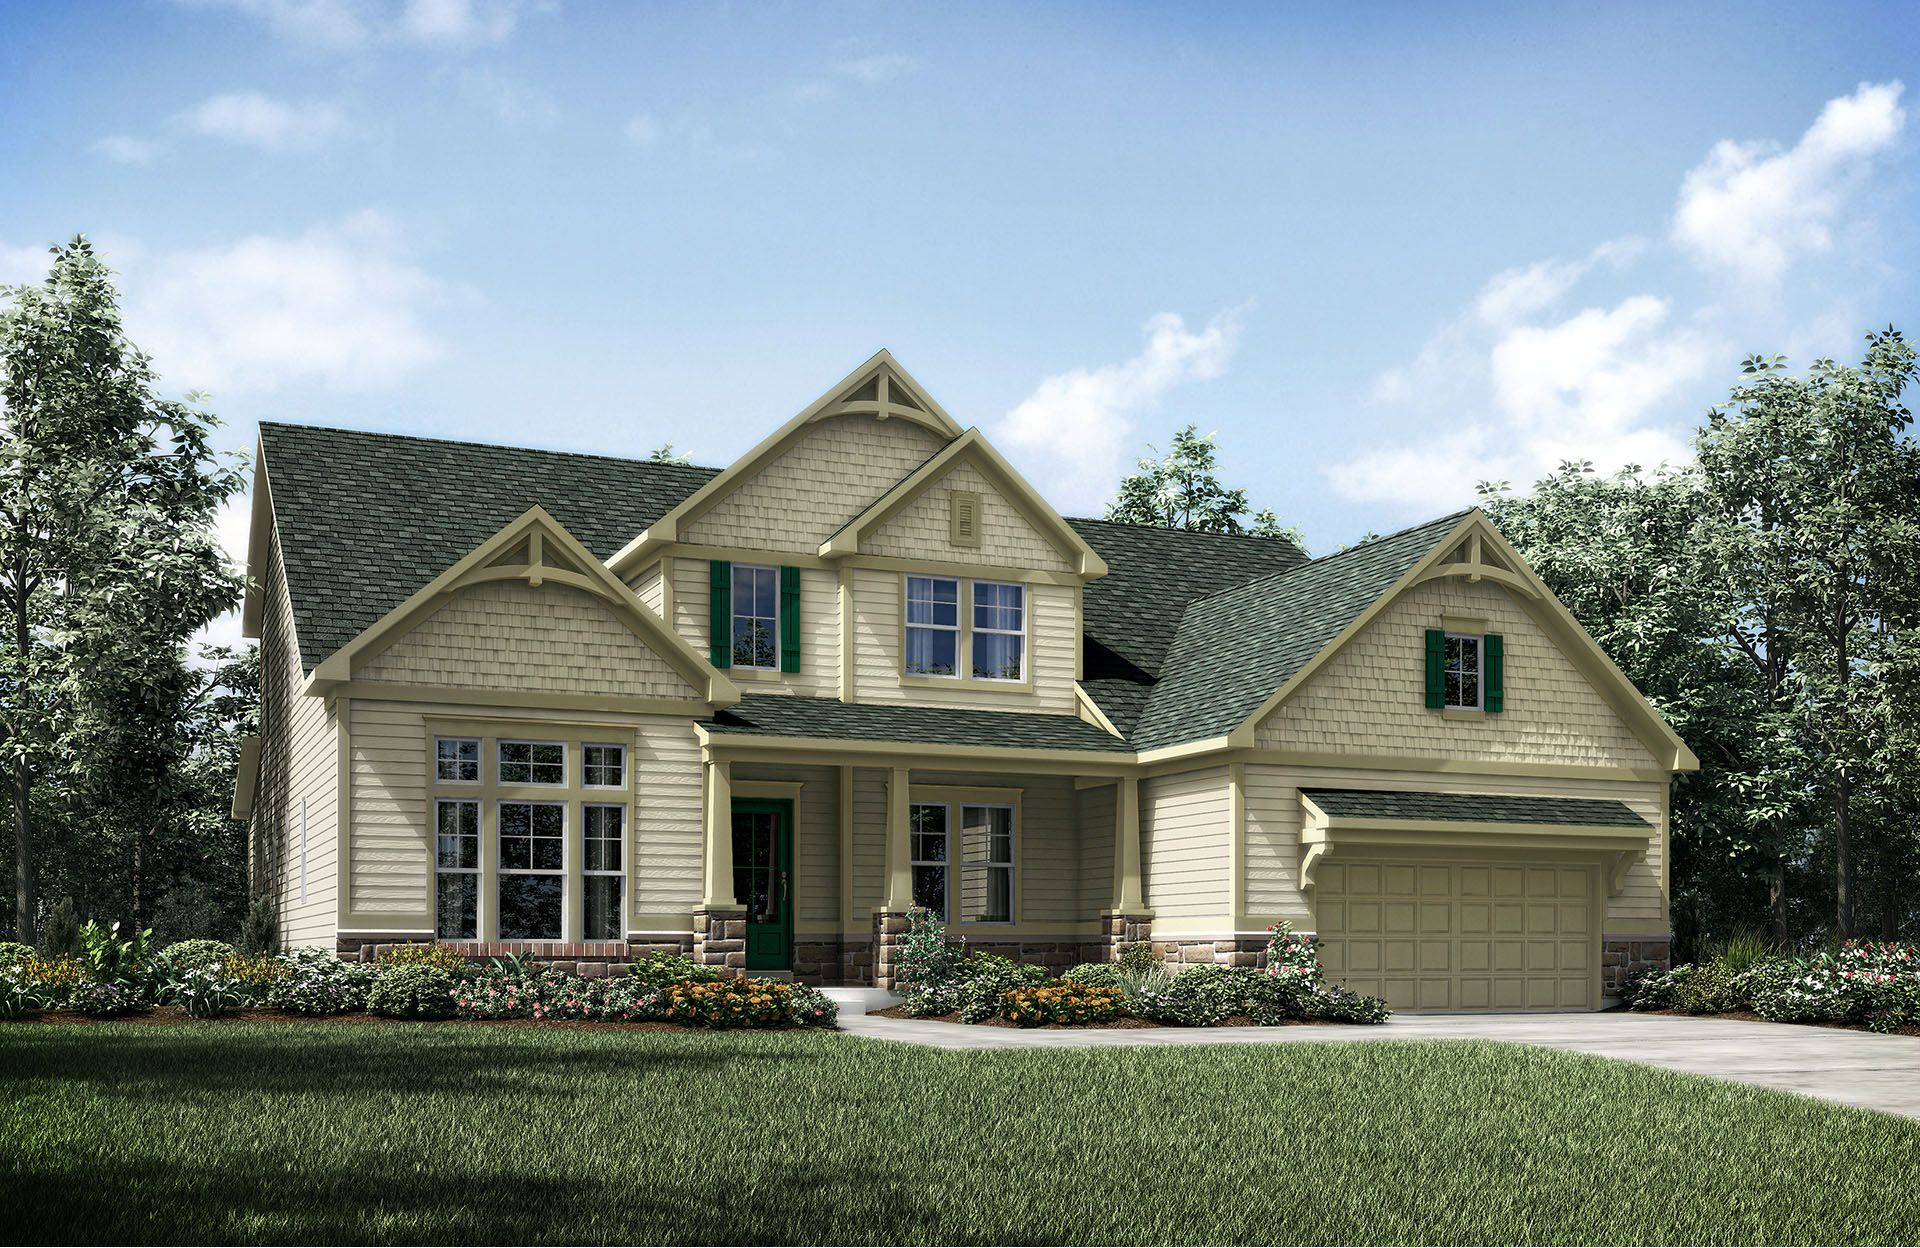 Single Family for Active at Virginia Crossing - Peacefield 7001 Saint Hill Court Haymarket, Virginia 20169 United States